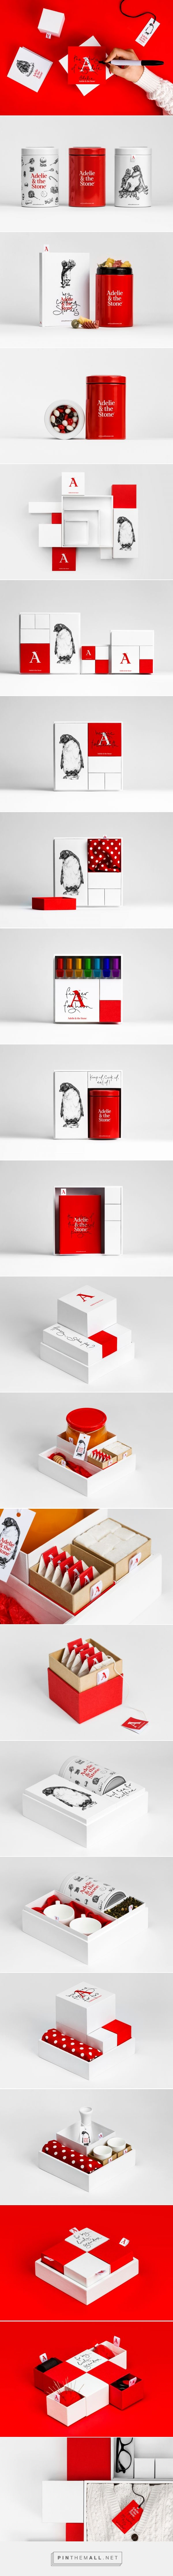 Adelie & the Stone - Packaging of the World - Creative Package Design Gallery - http://www.packagingoftheworld.com/2016/11/adelie-stone.html